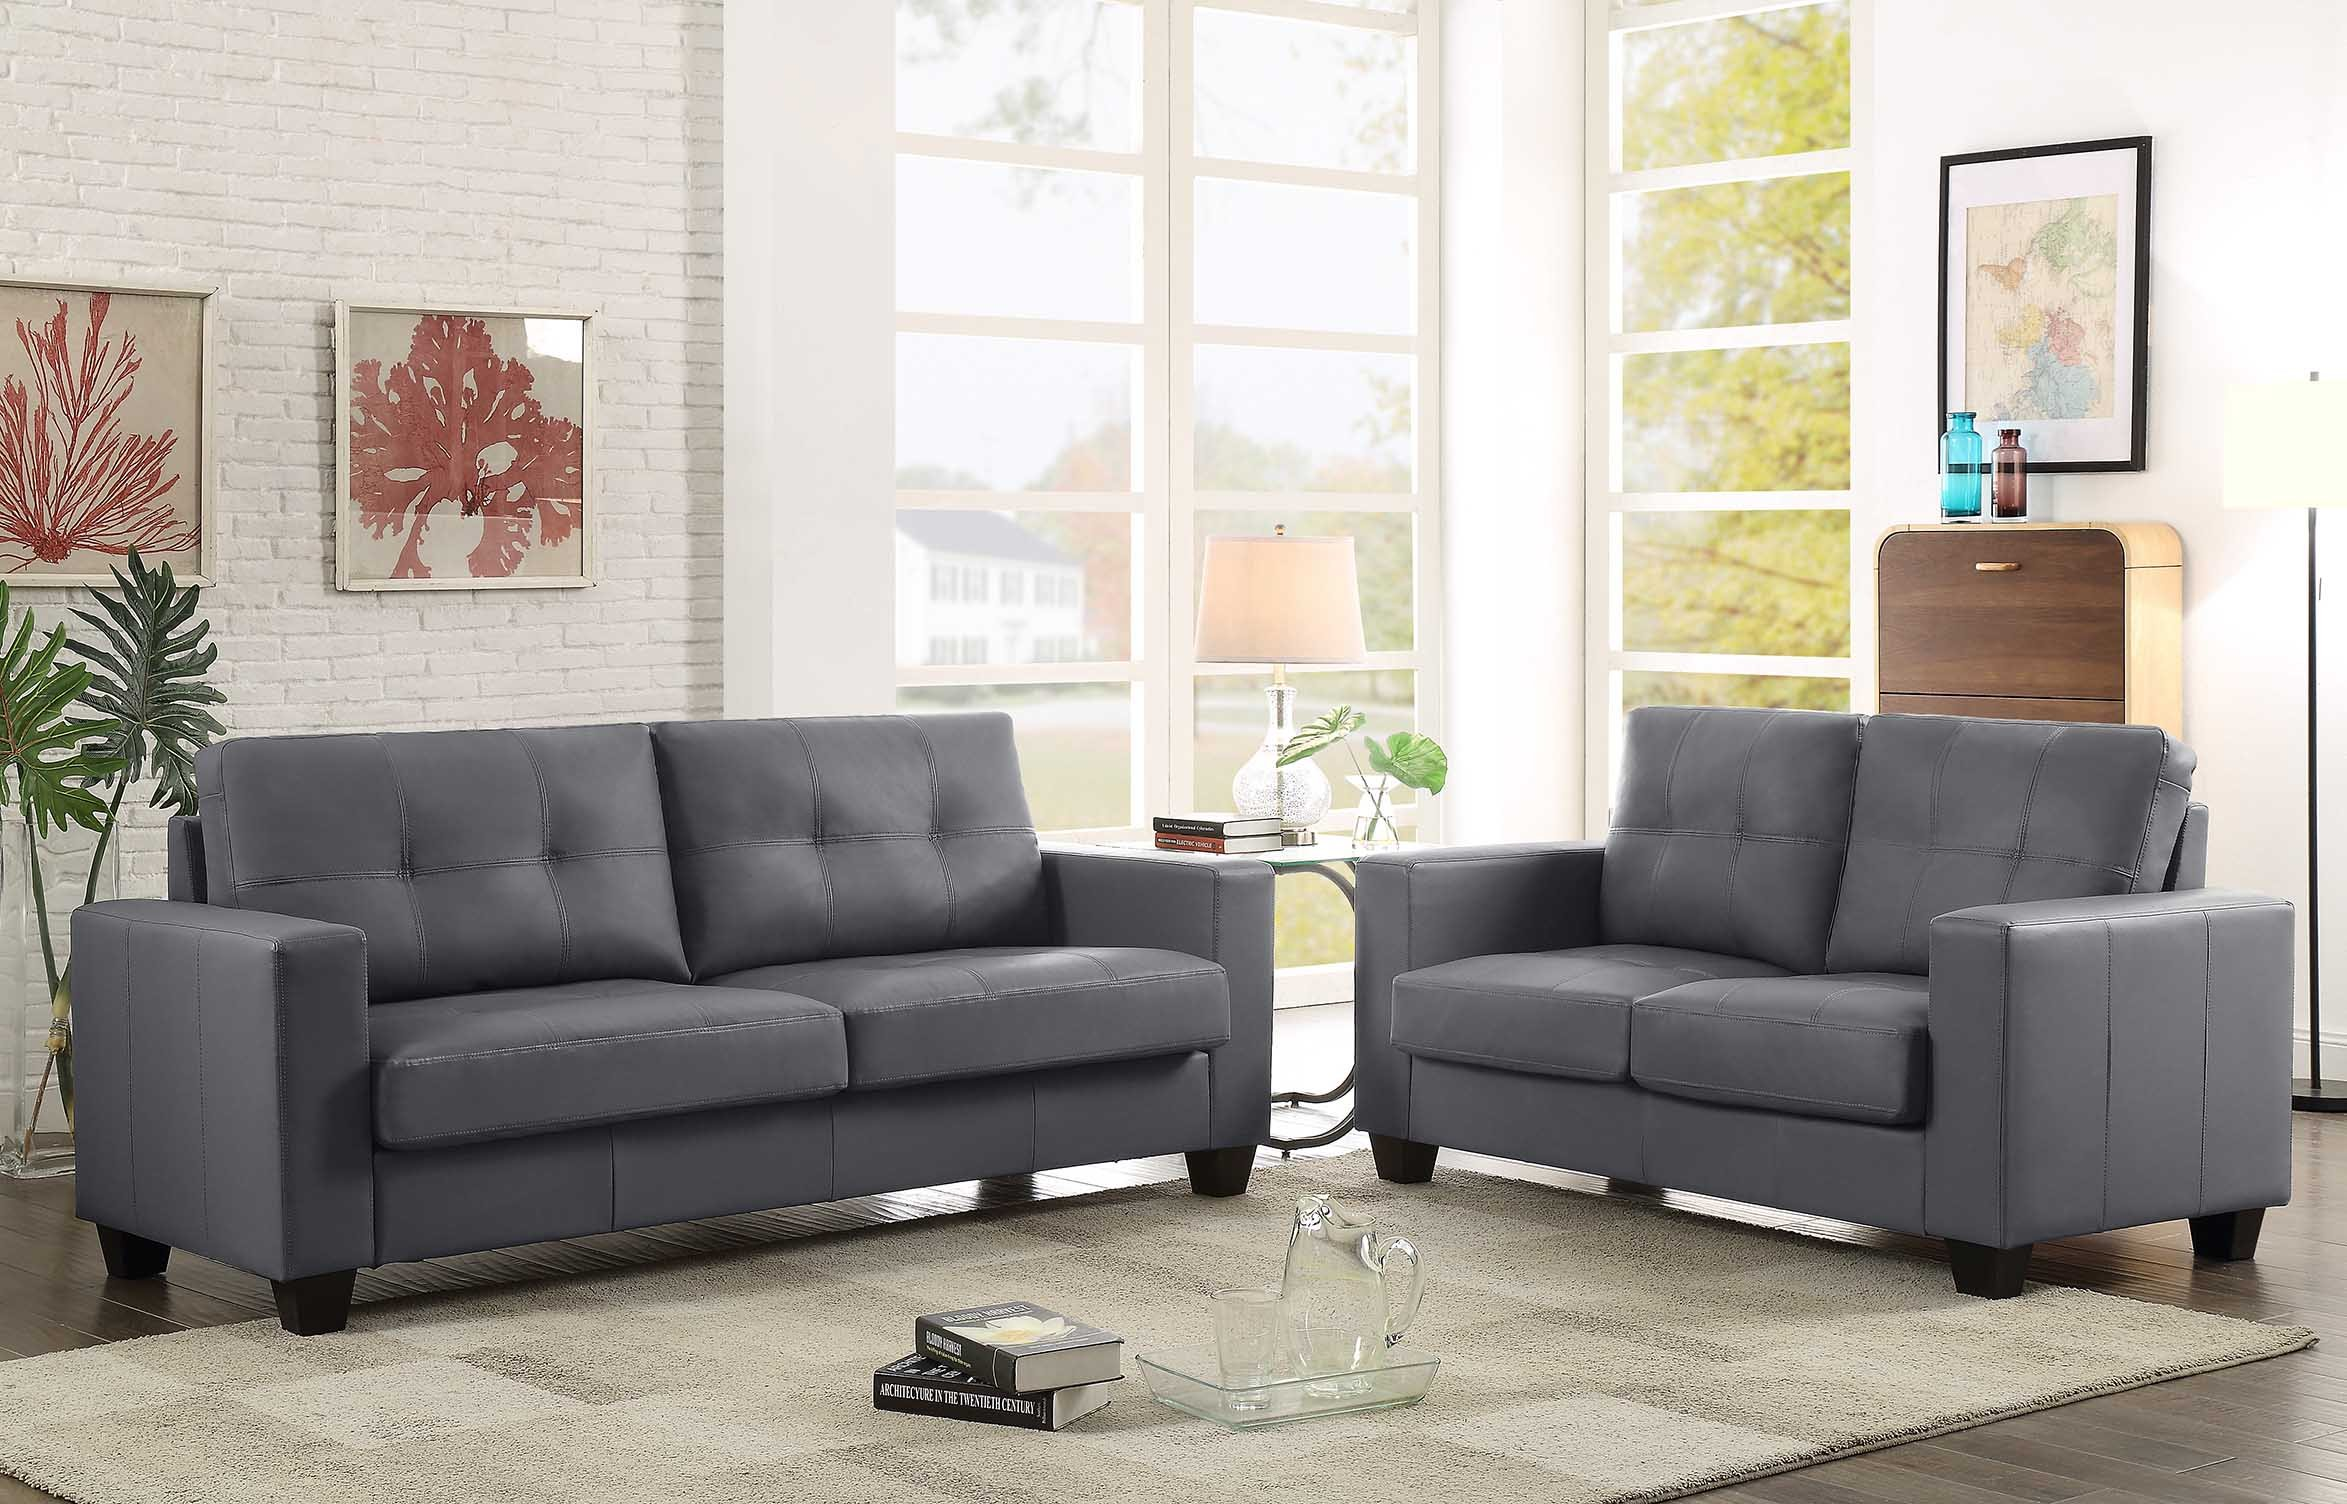 GTU Furniture 2Pc Contemporary Modern Pu-Leather Sofa and Loveseat Living Room Set (GREY) by GTU Furniture